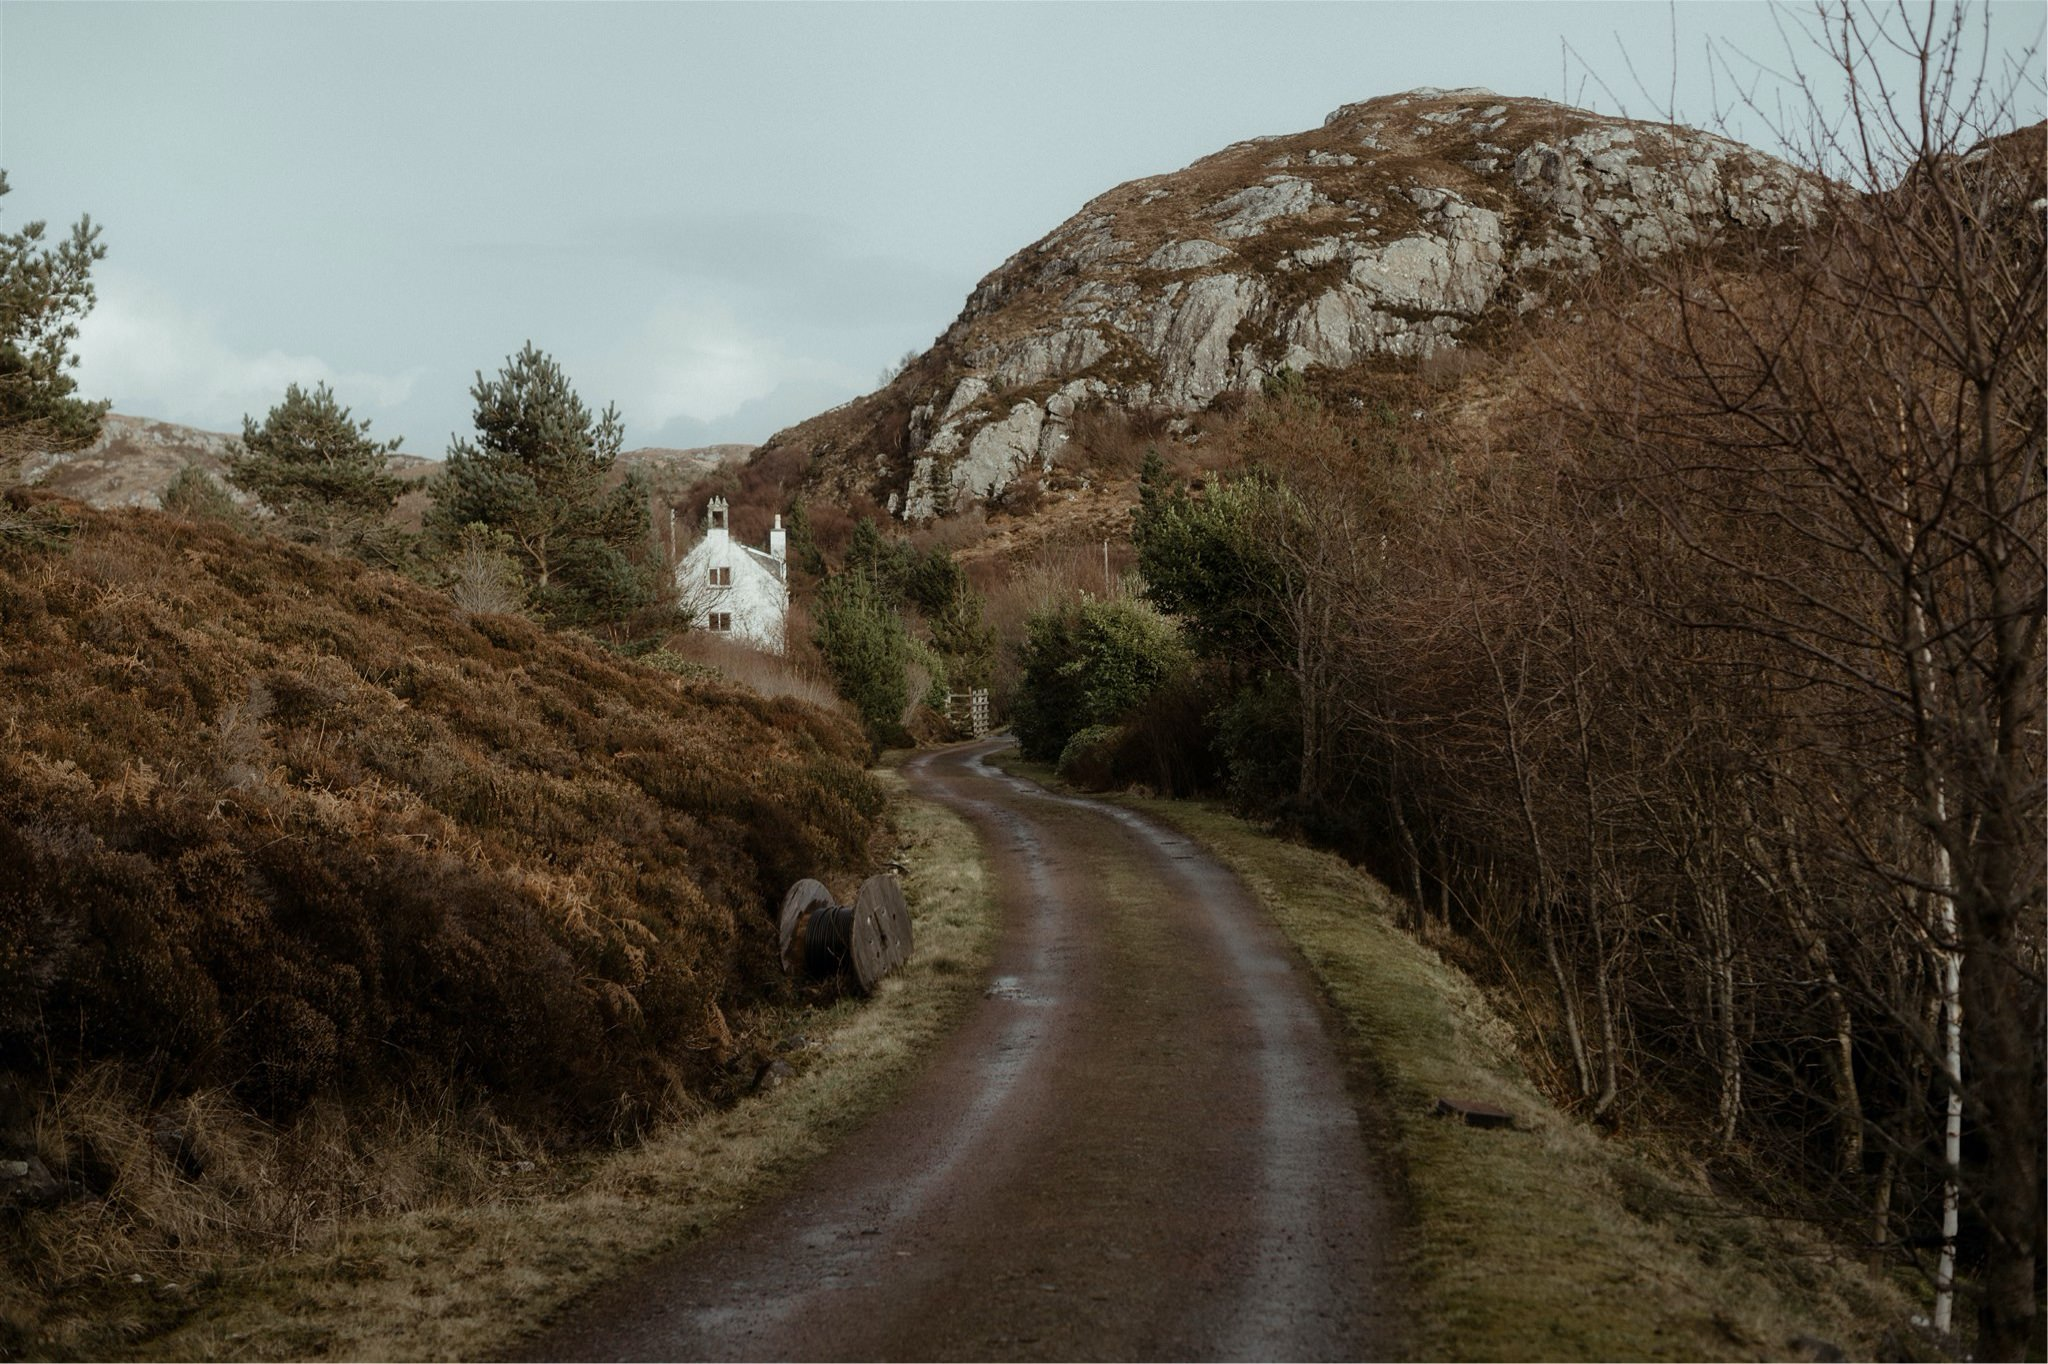 Landscape shot of aroad leading towards a cottage in Assynt, Scotland